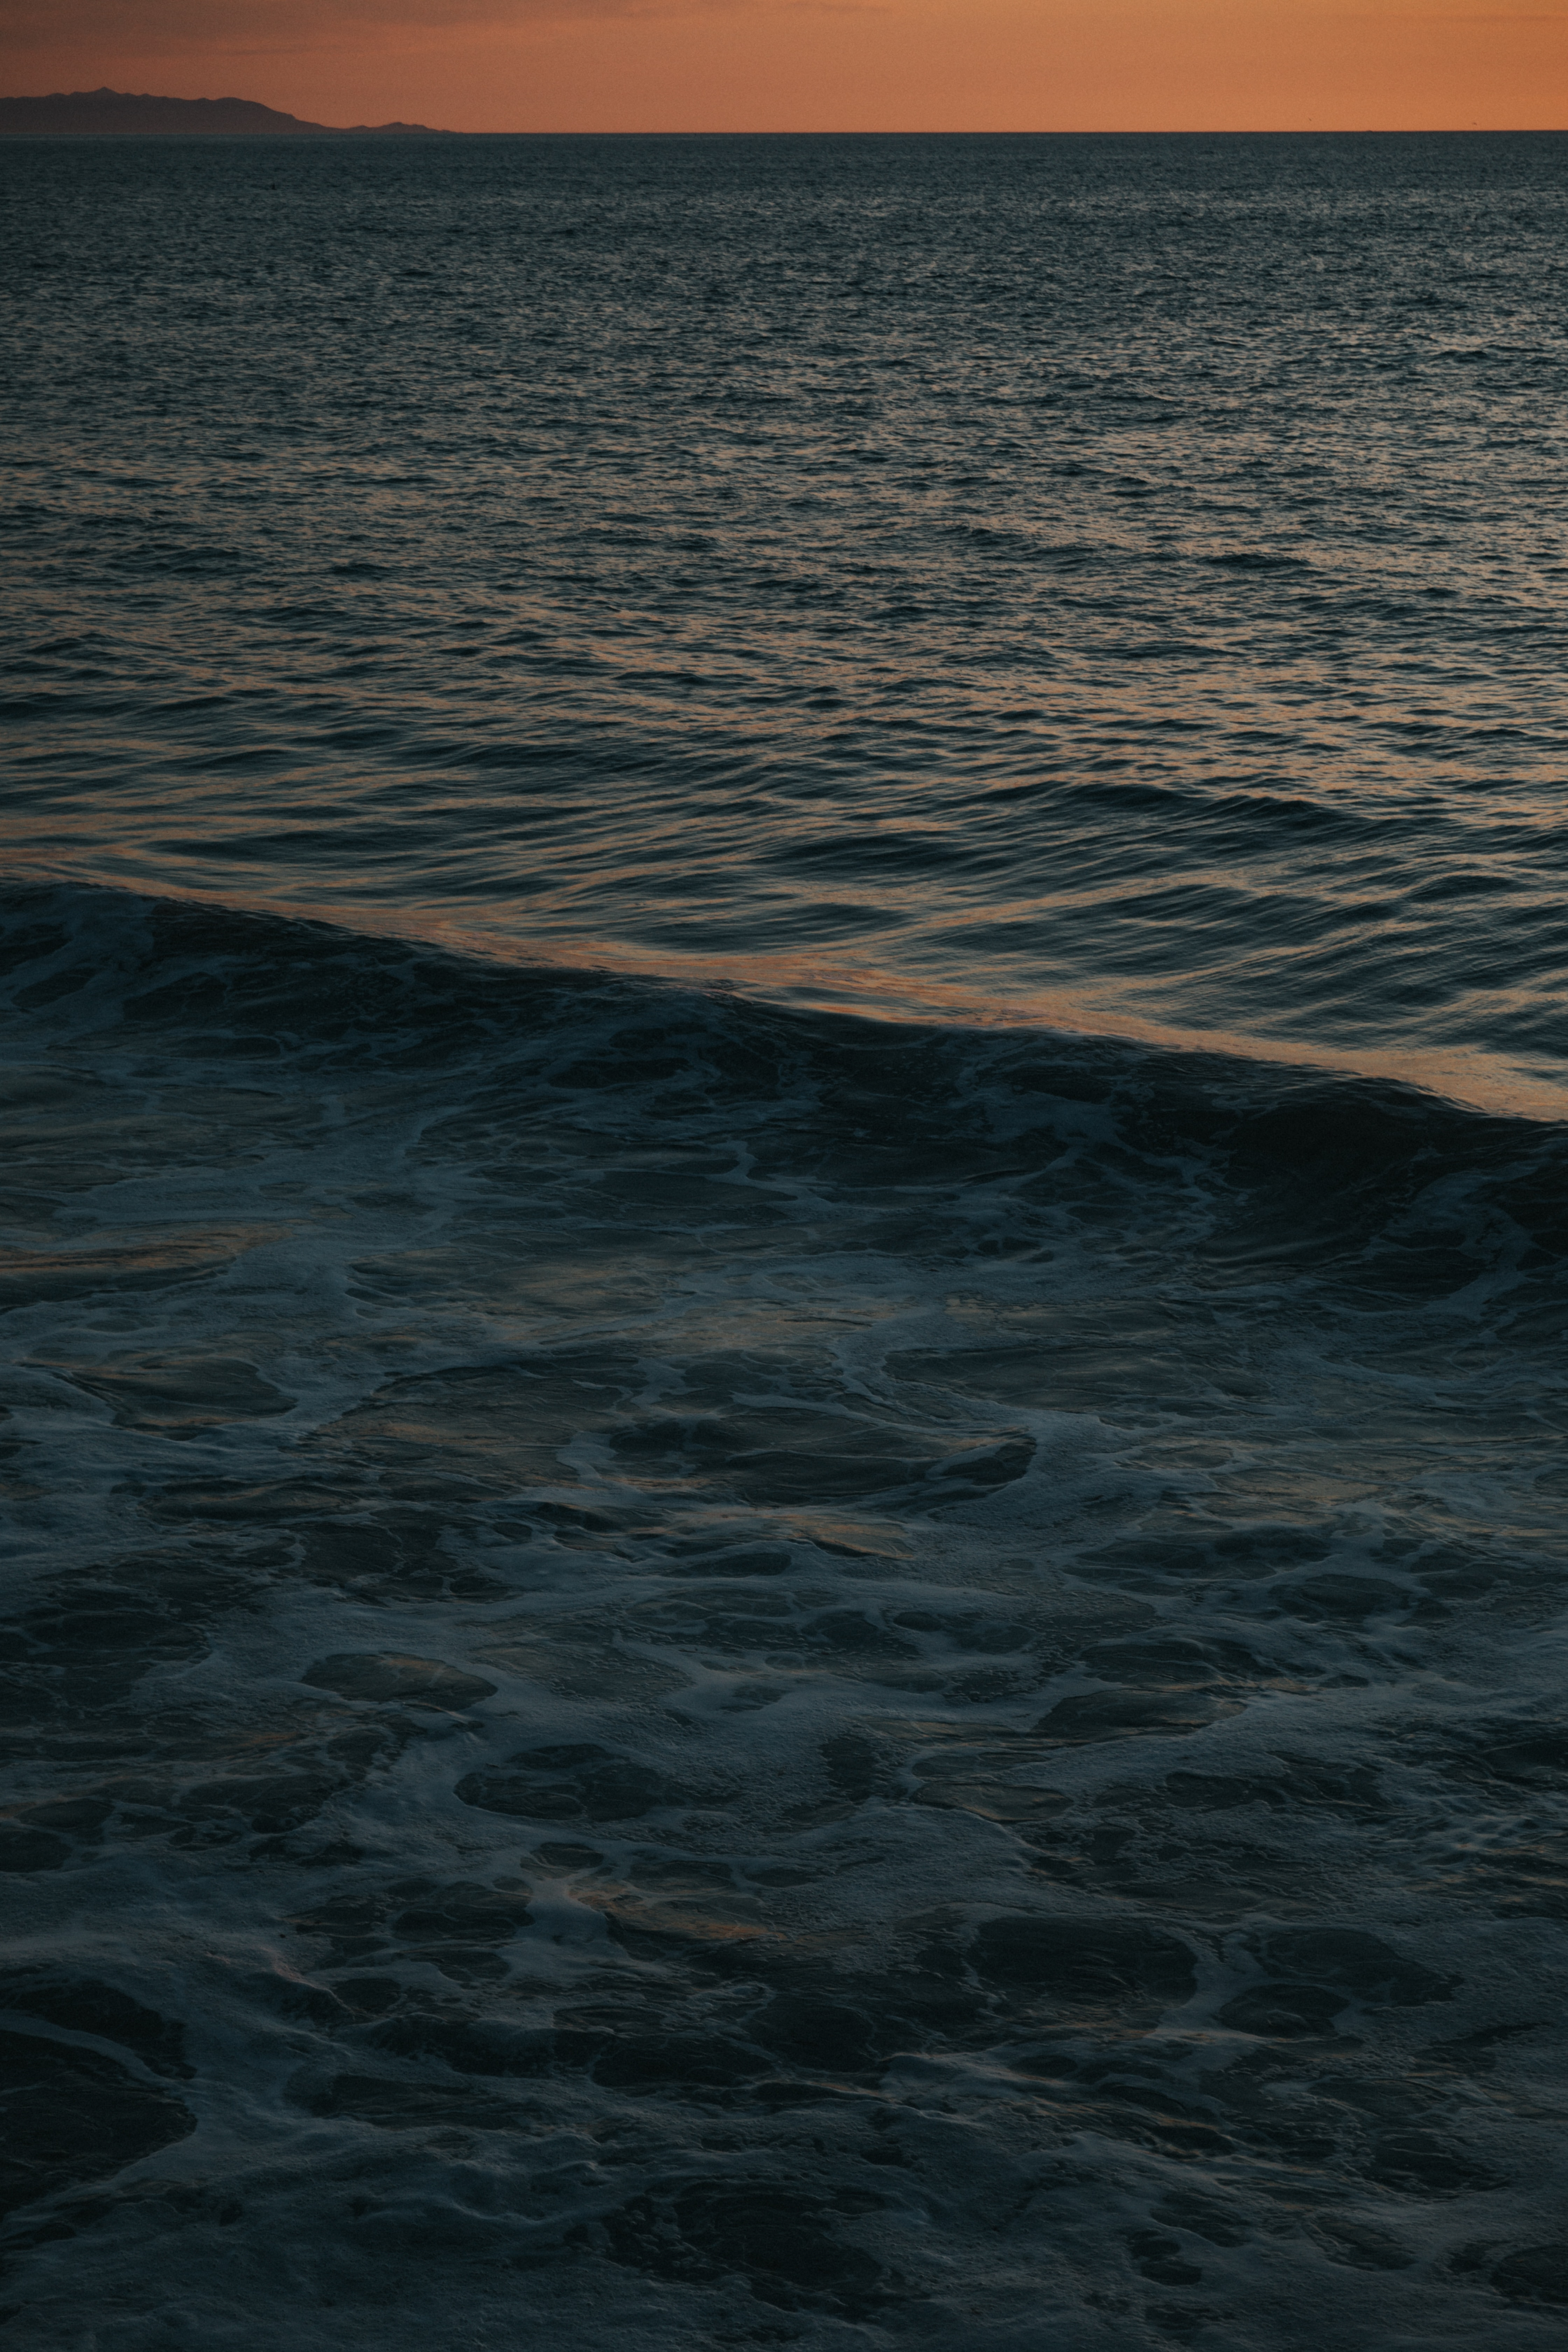 101750 download wallpaper Nature, Sea, Ripples, Ripple, Dusk, Twilight, Water, Waves screensavers and pictures for free